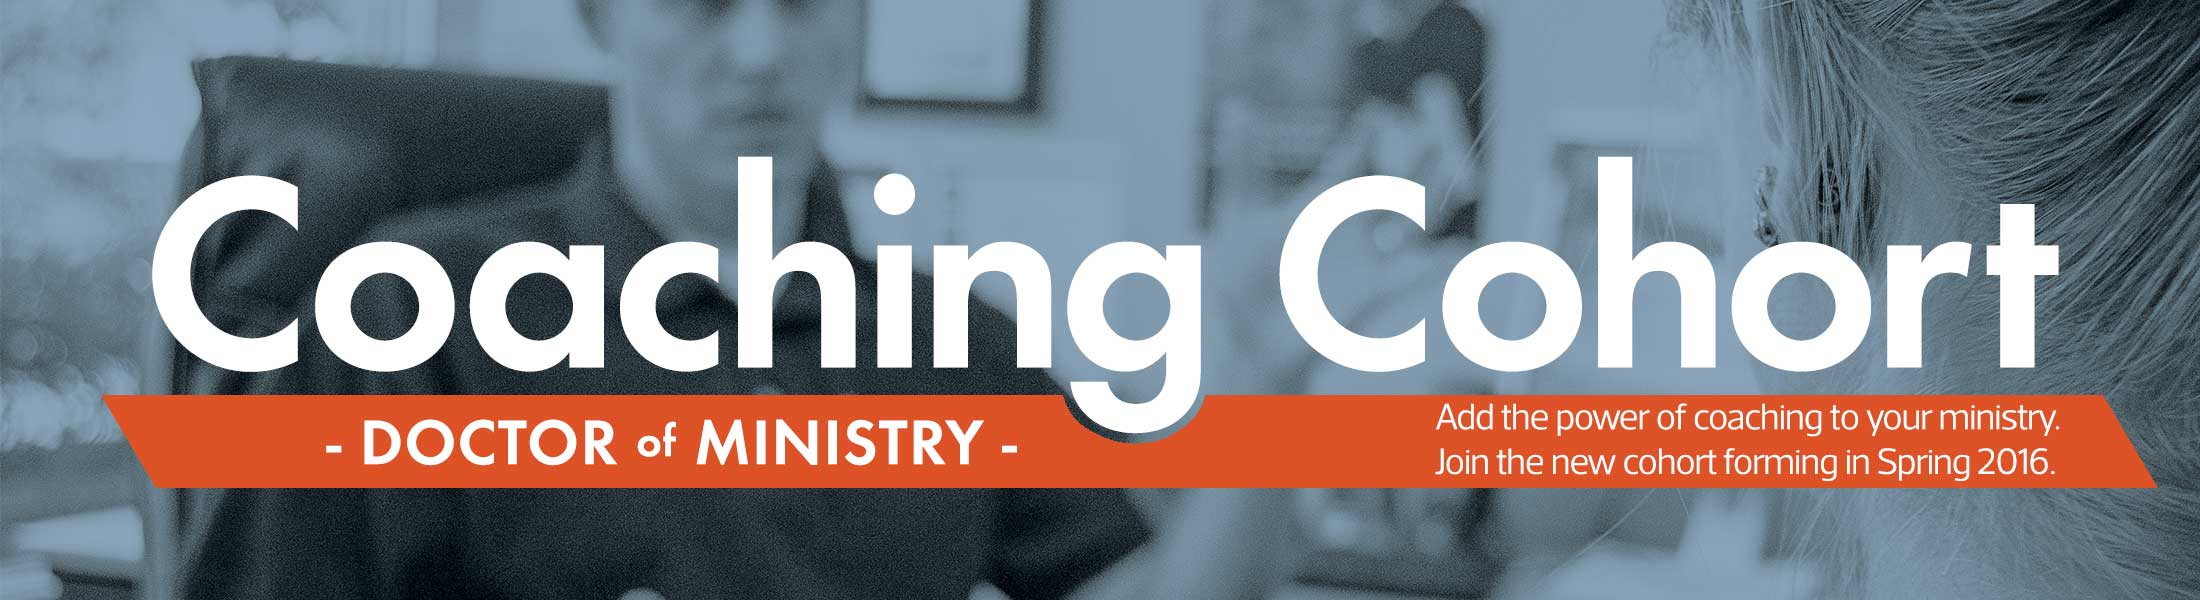 Doctor of Ministry Coaching Cohort Banner